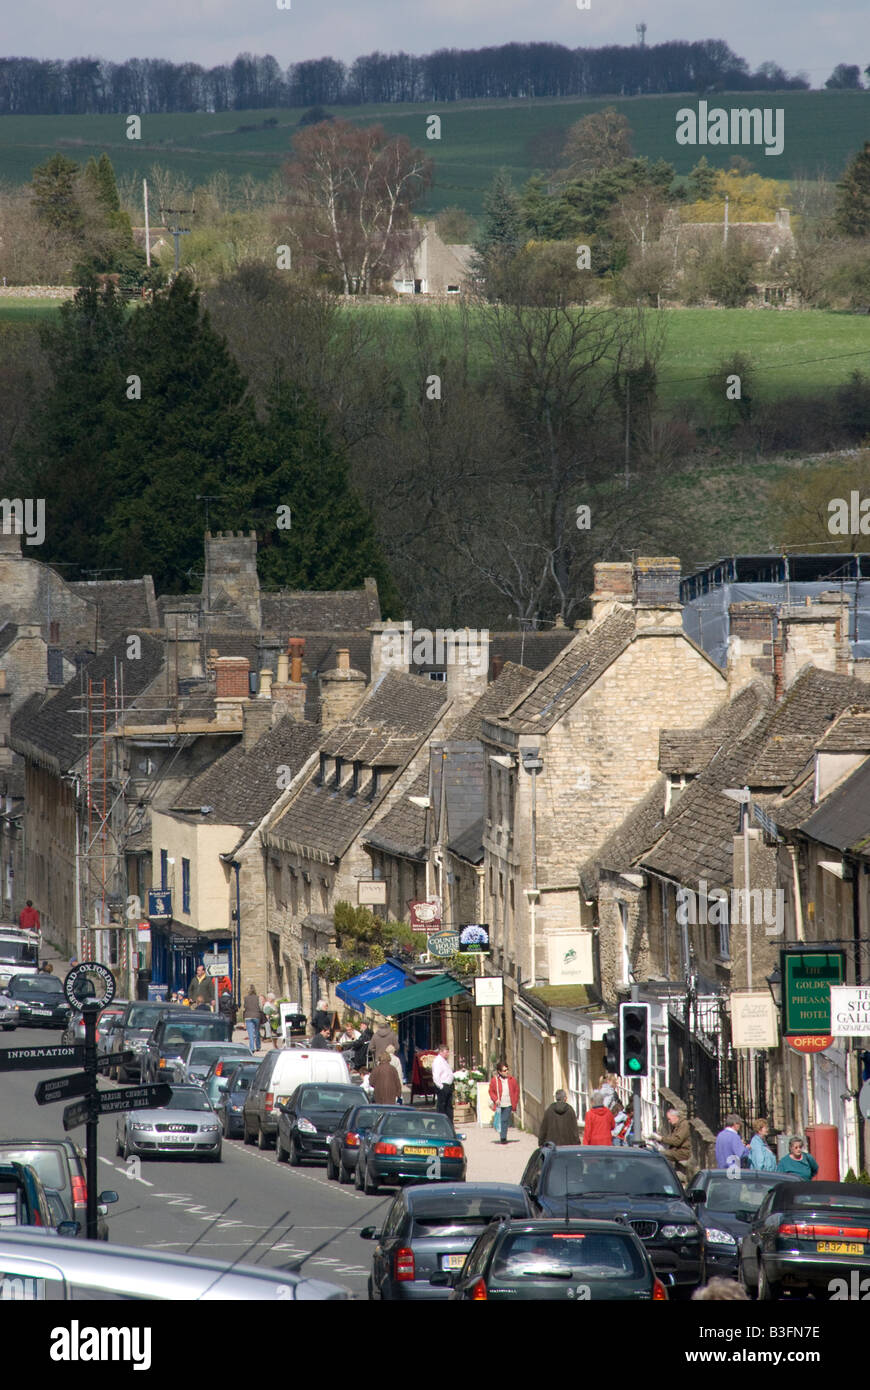 Main Street Cotswold stone houses shops Burford Oxfordshire England UK - Stock Image